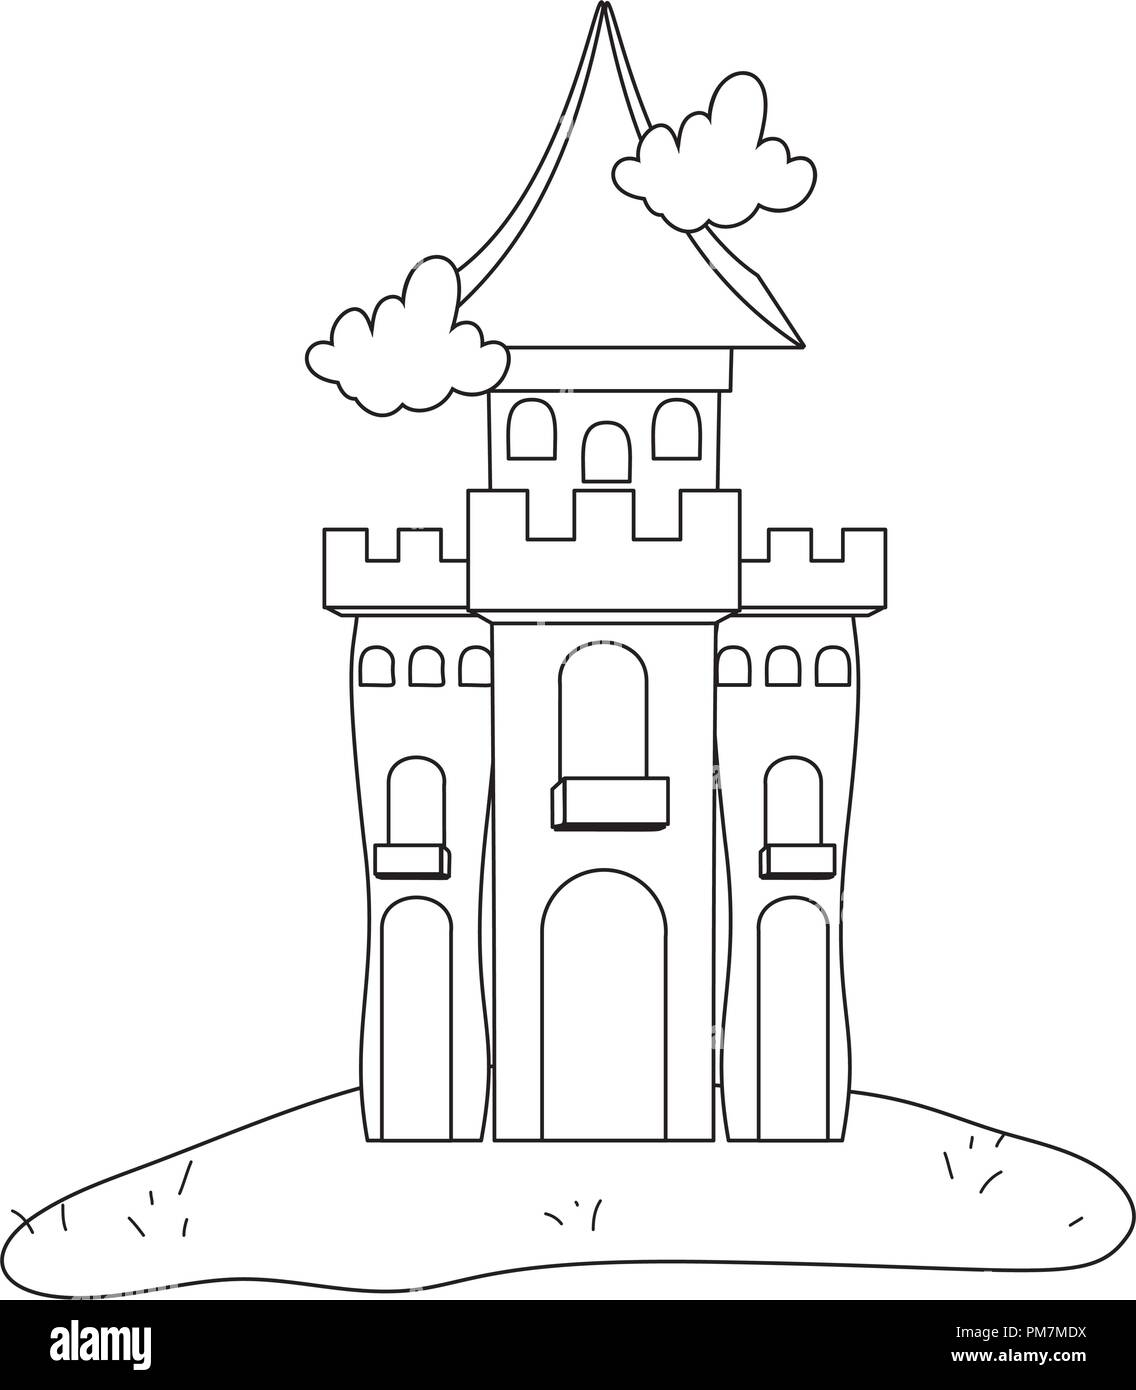 Outline Mystery Castle With Scary Architecture Style Stock Vector